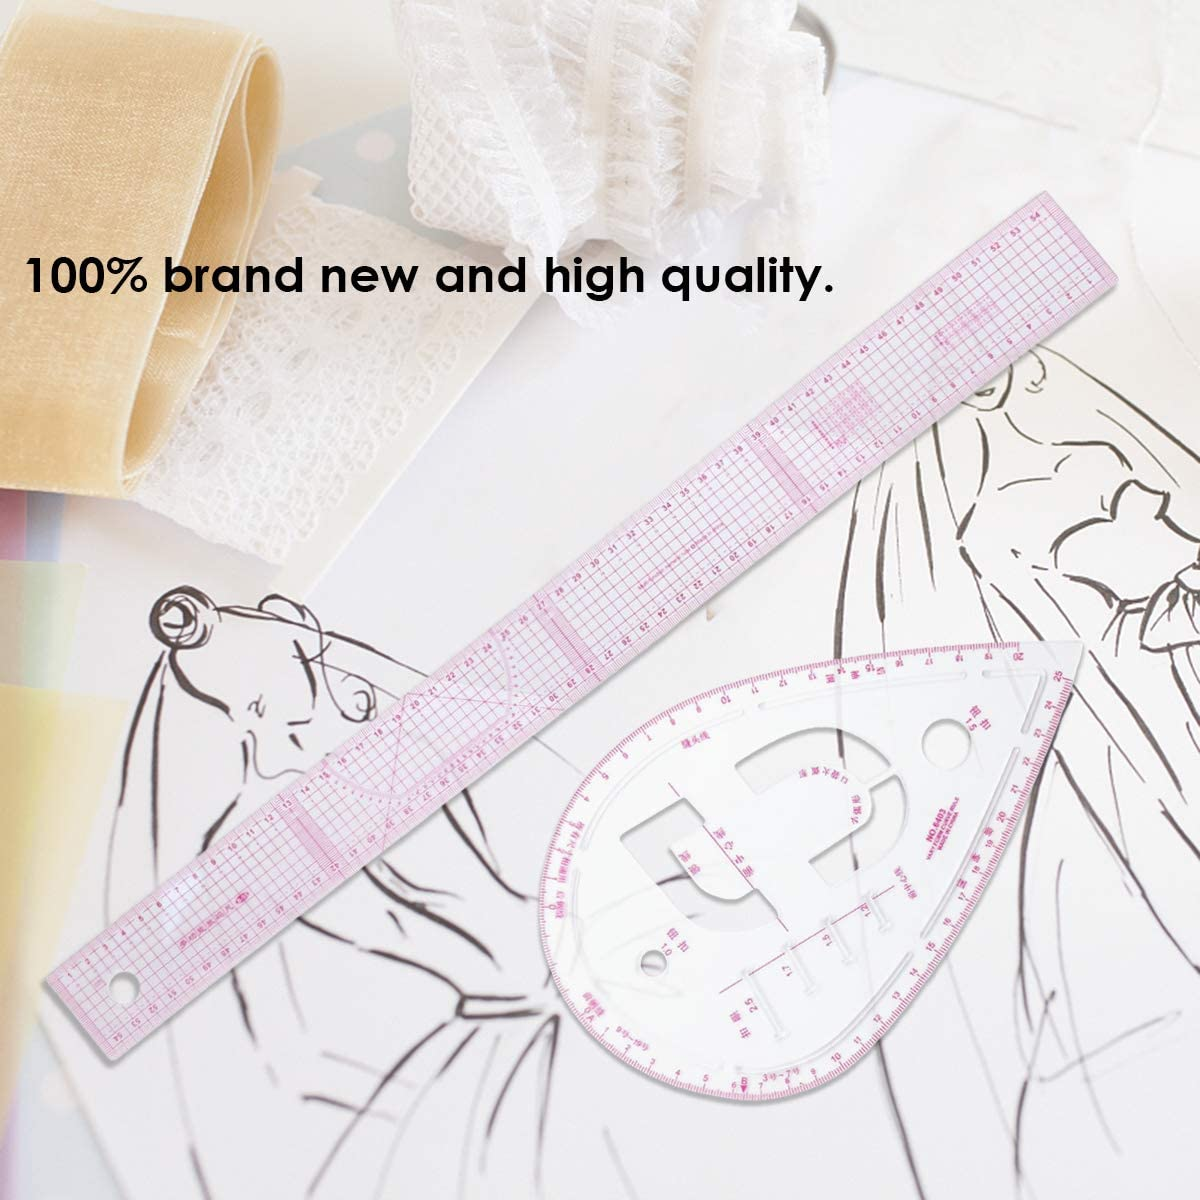 7pcs French Curve Sewing pattern Ruler For Dressmaking Tailor Measure Home Tool